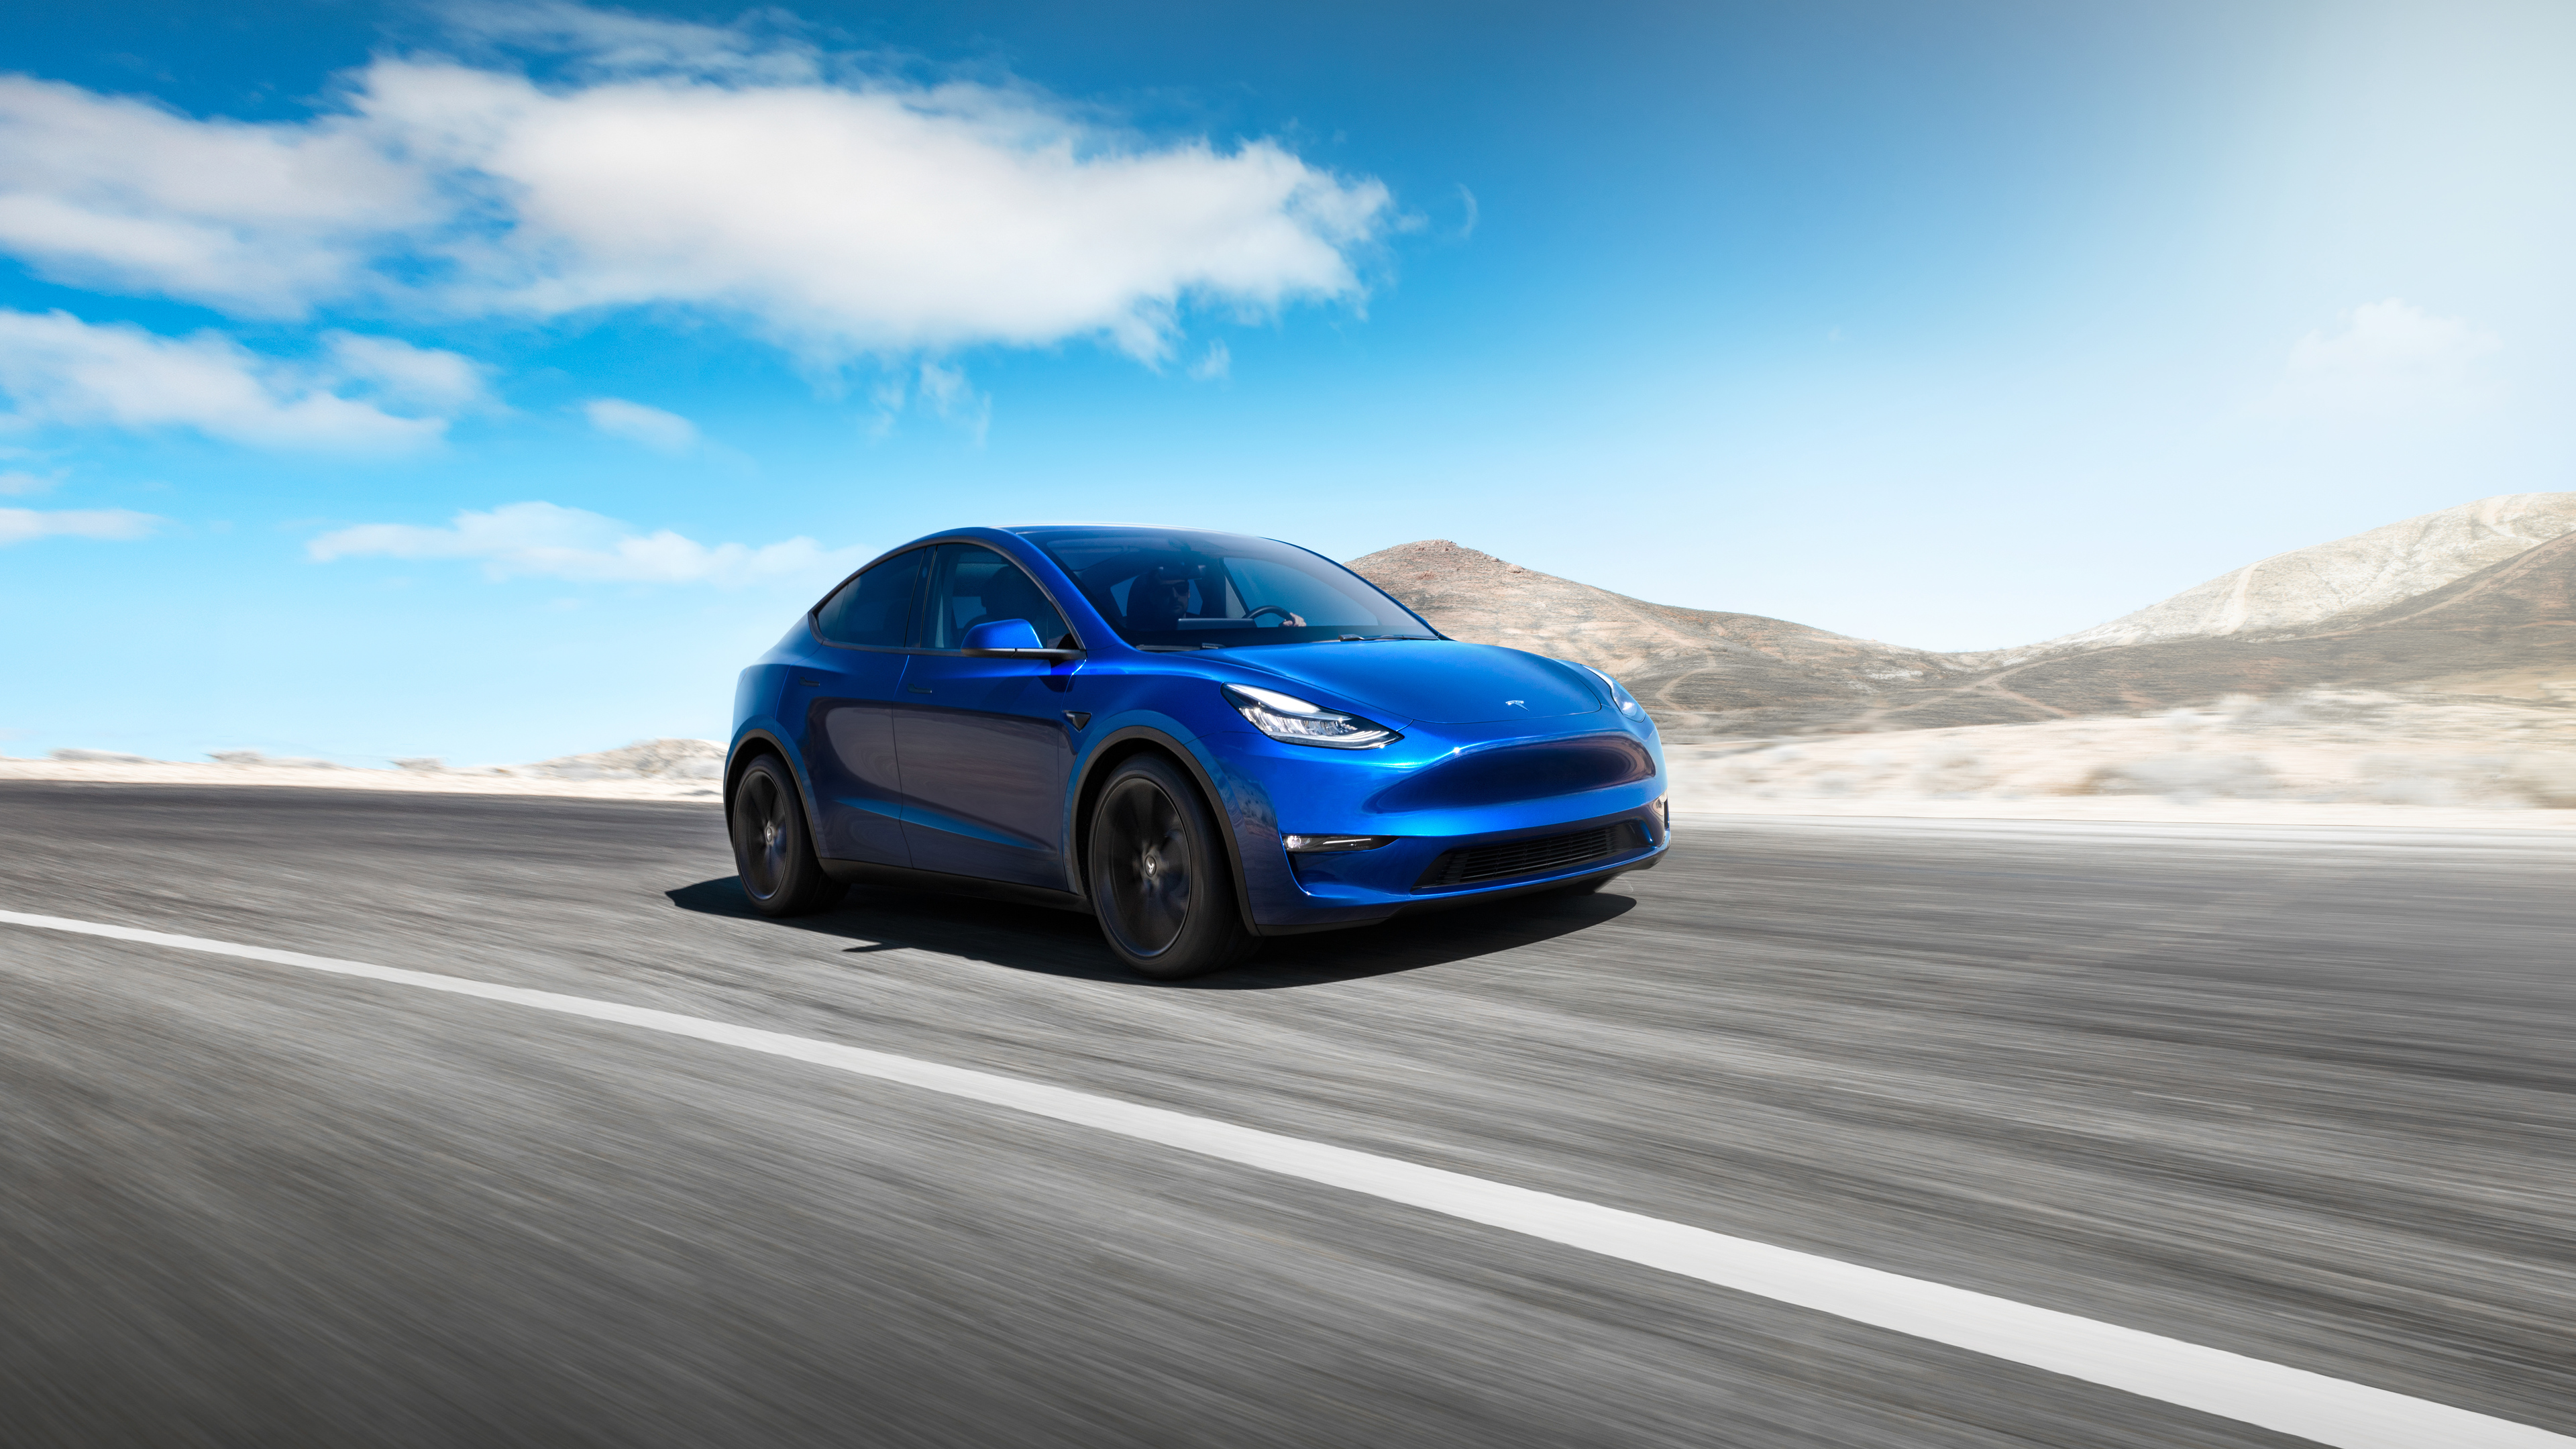 2019 tesla model y 4k 1553076247 - 2019 Tesla Model Y 4k - tesla wallpapers, tesla model y wallpapers, hd-wallpapers, cars wallpapers, 8k wallpapers, 5k wallpapers, 4k-wallpapers, 2019 cars wallpapers, 10k wallpapers